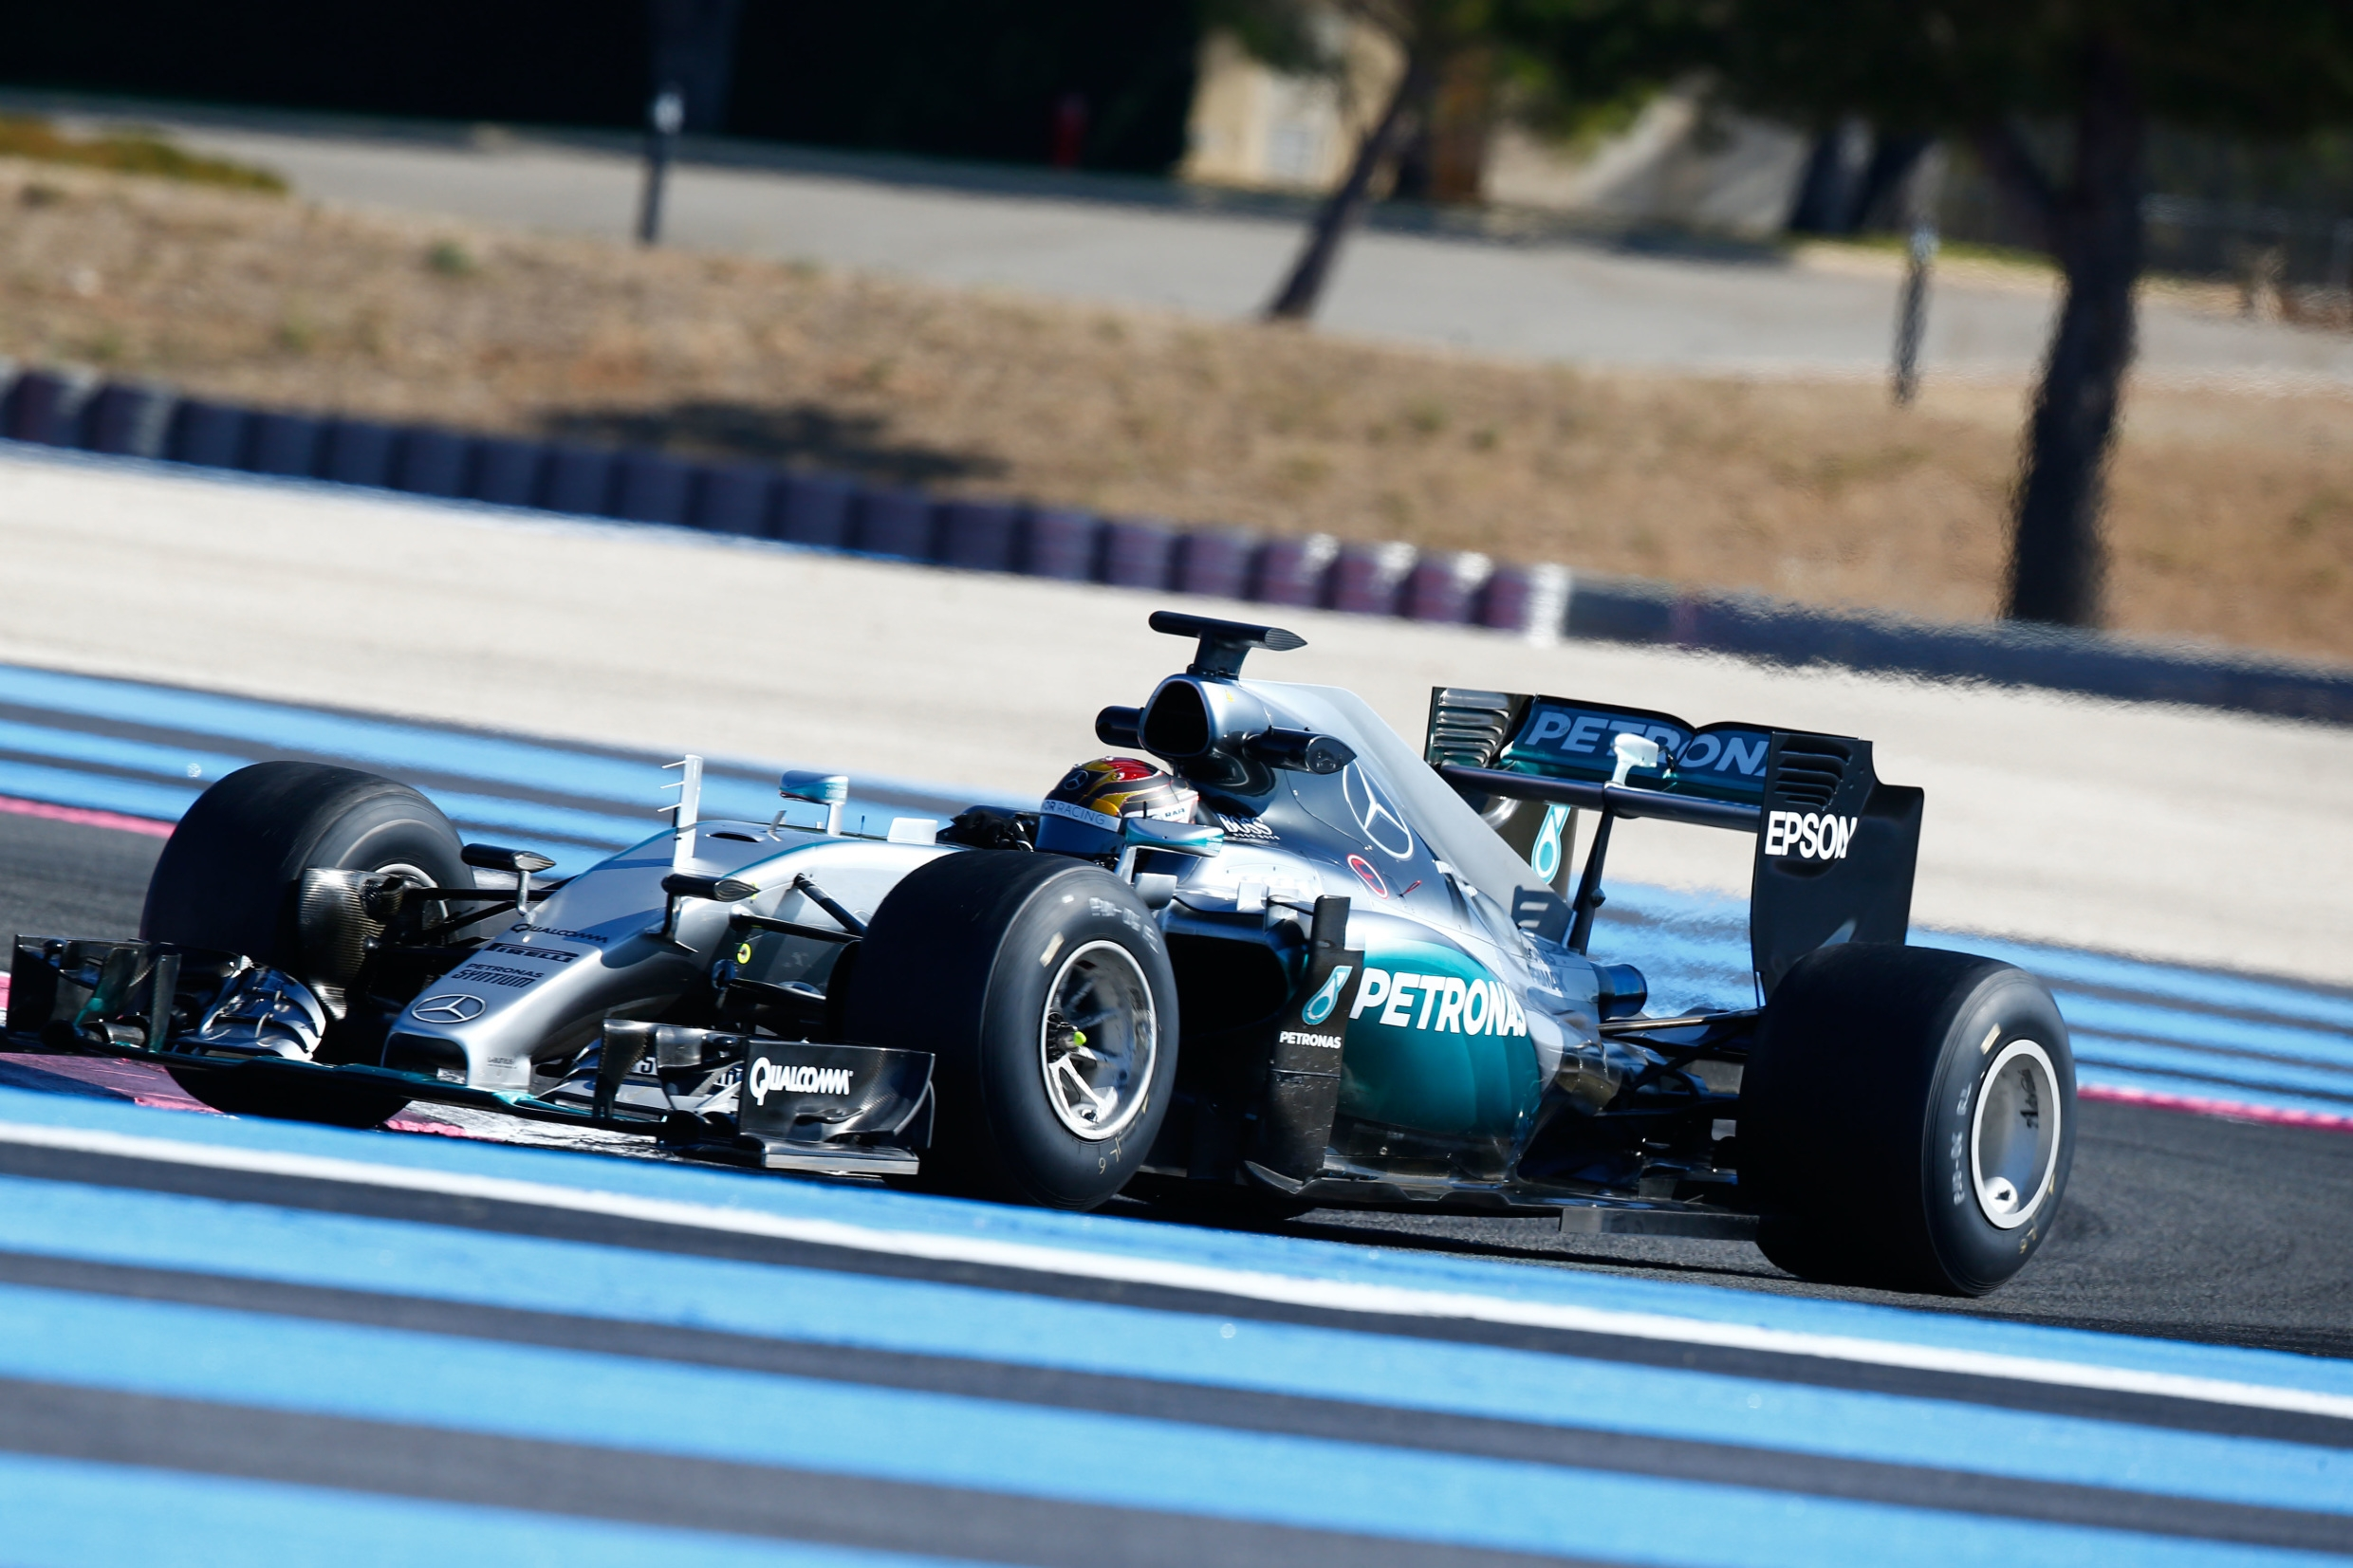 Lewis Hamilton fastest in Friday practice for F1 French Grand Prix